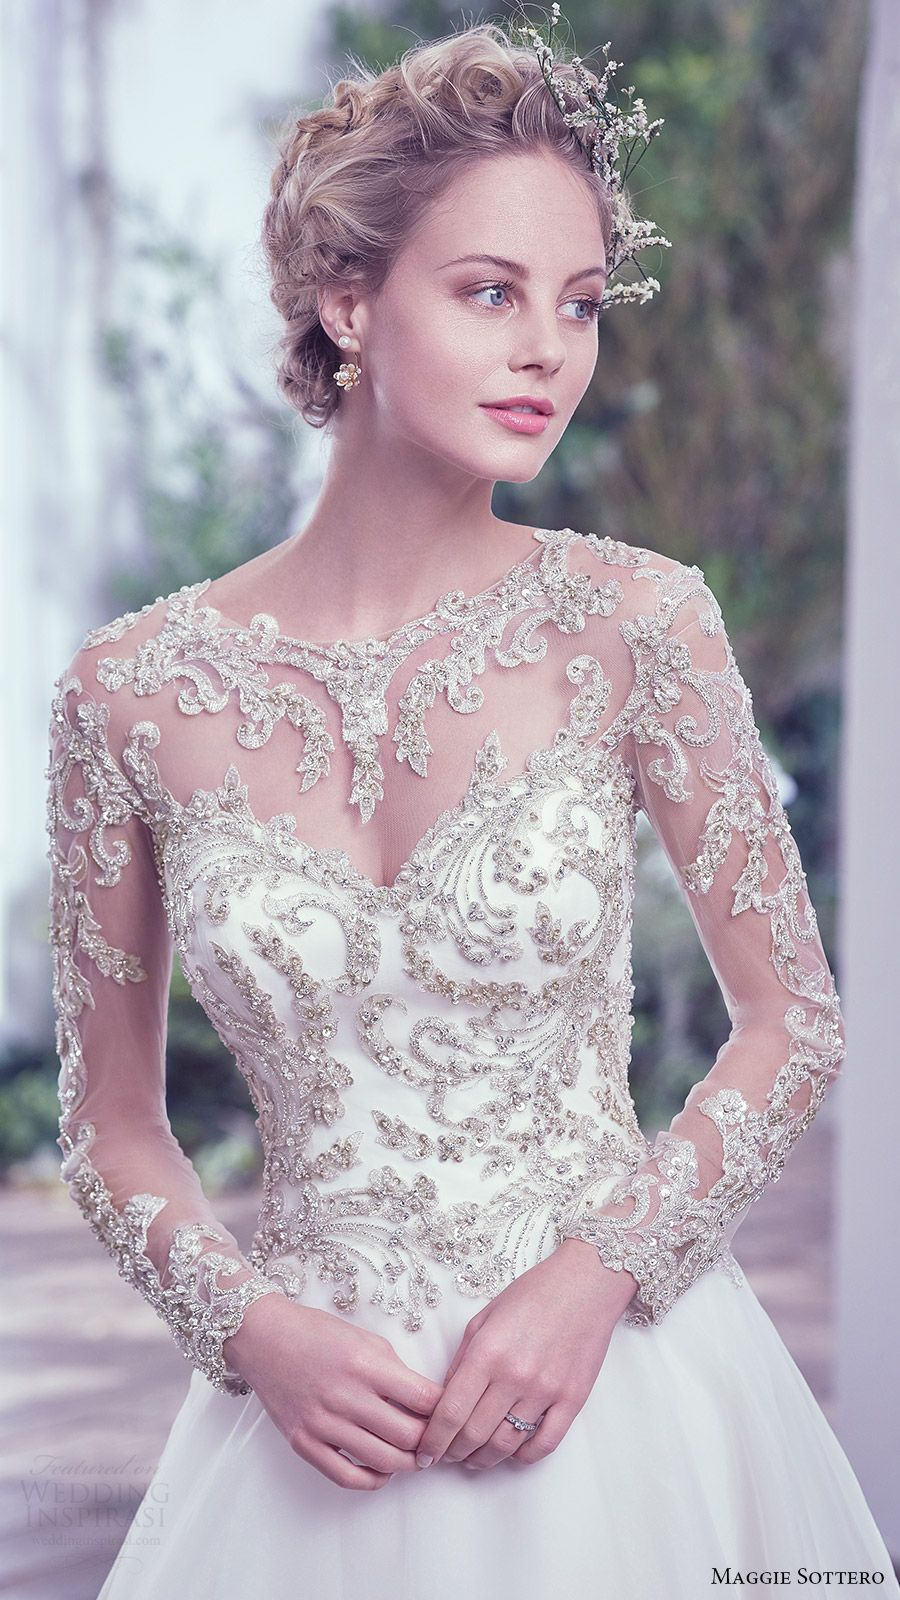 a7d9a907f27 MAGGIE SOTTERO bridal fall 2016 illusion long sleeves sweetheart jewel neck  ball gown wedding dress (lorenza) zfv embellished bodice romantic  bridal  ...